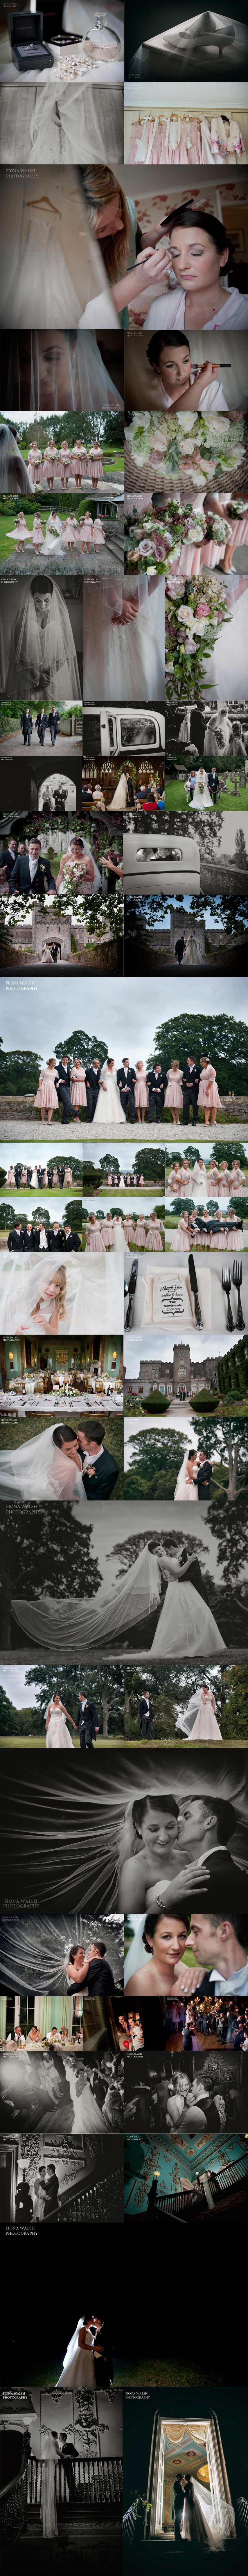 Wedding photographer Exeter, Powderham castle